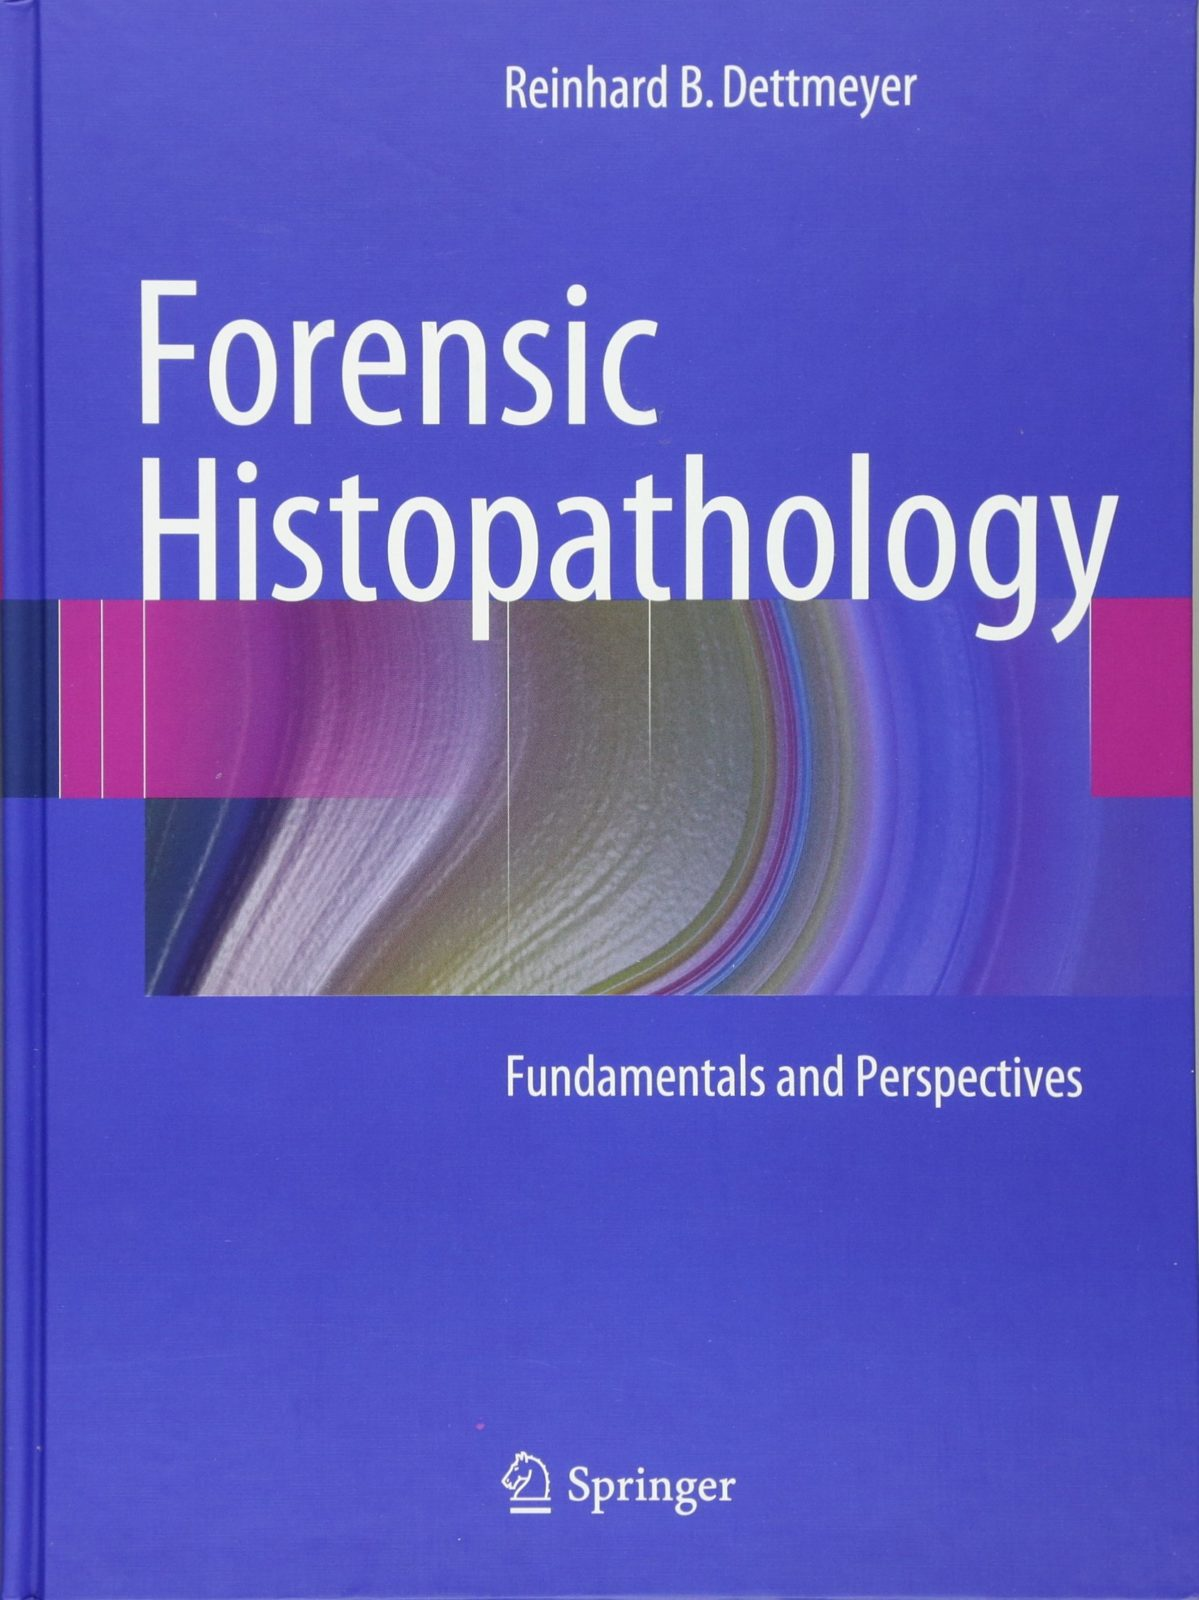 FORENSIC HISTOPATHOLOGY - FUNDAMENTALS AND PERSPECTIVES